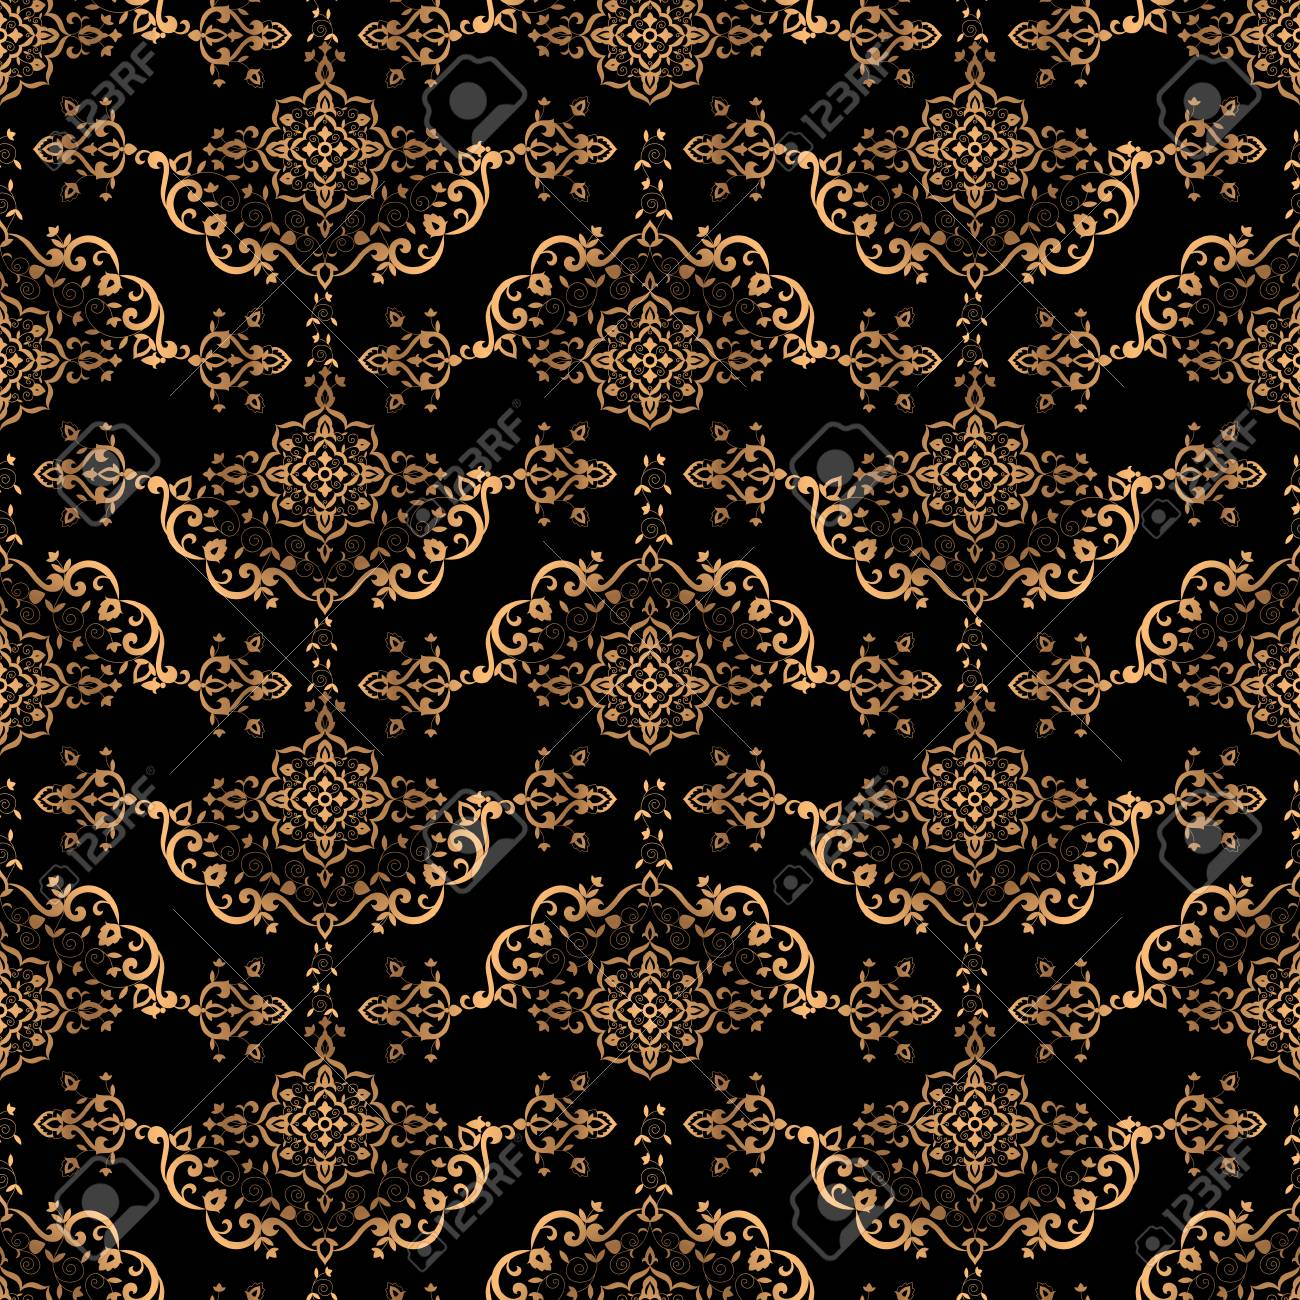 Luxury Background Design Pattern Vector Seamless Gold Black Vintage Ornament Royal Victorian Print